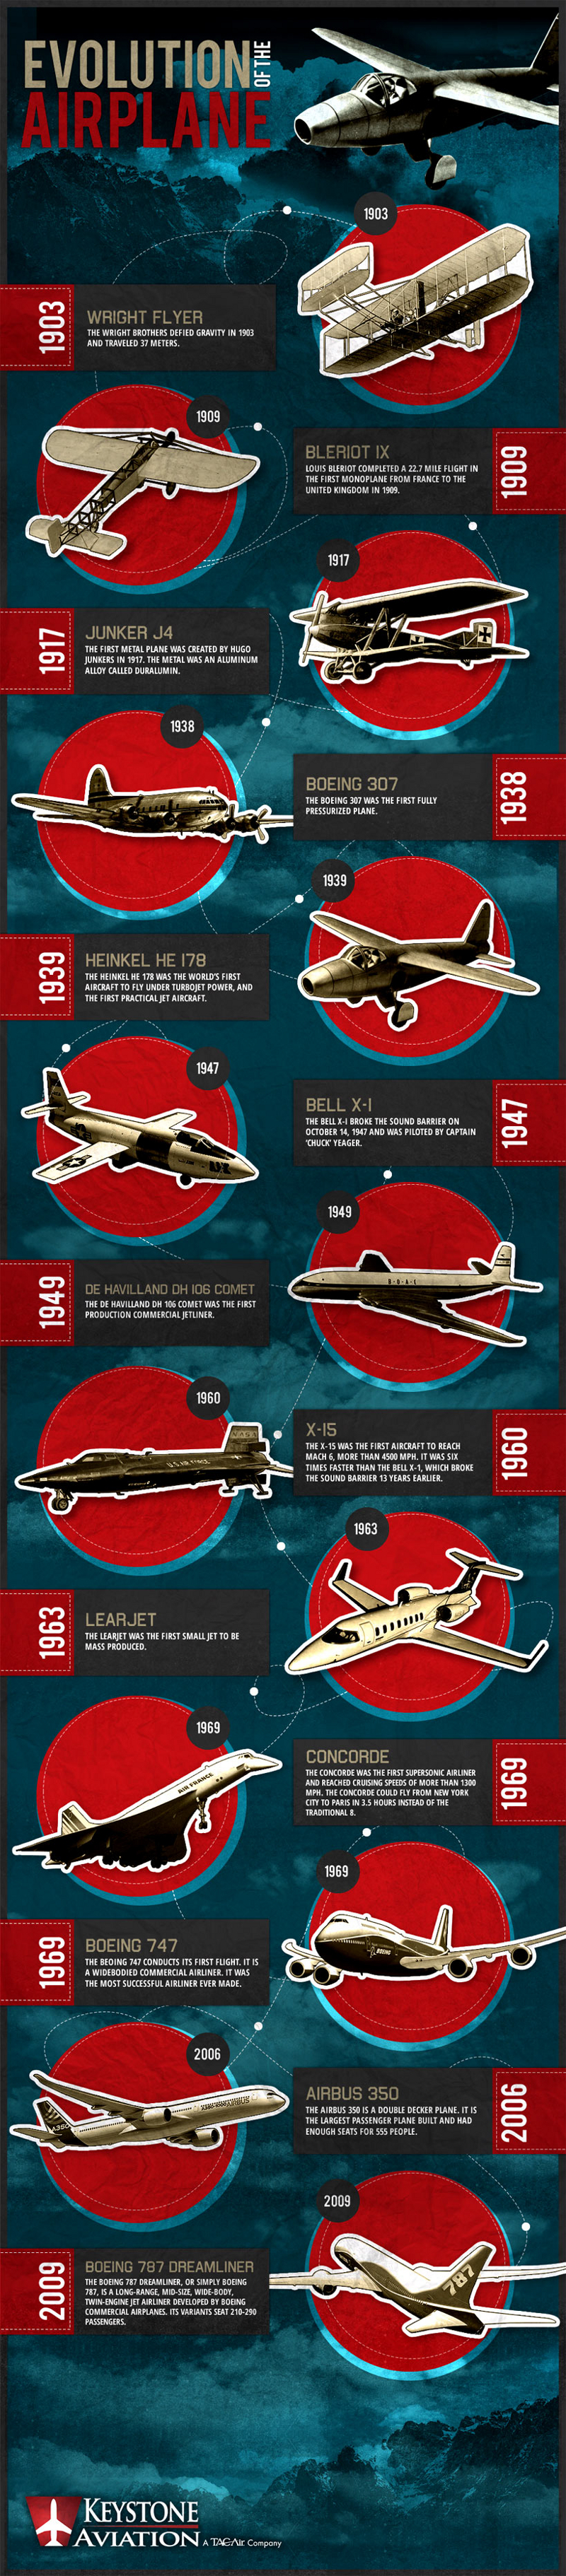 Evolution of the Airplane